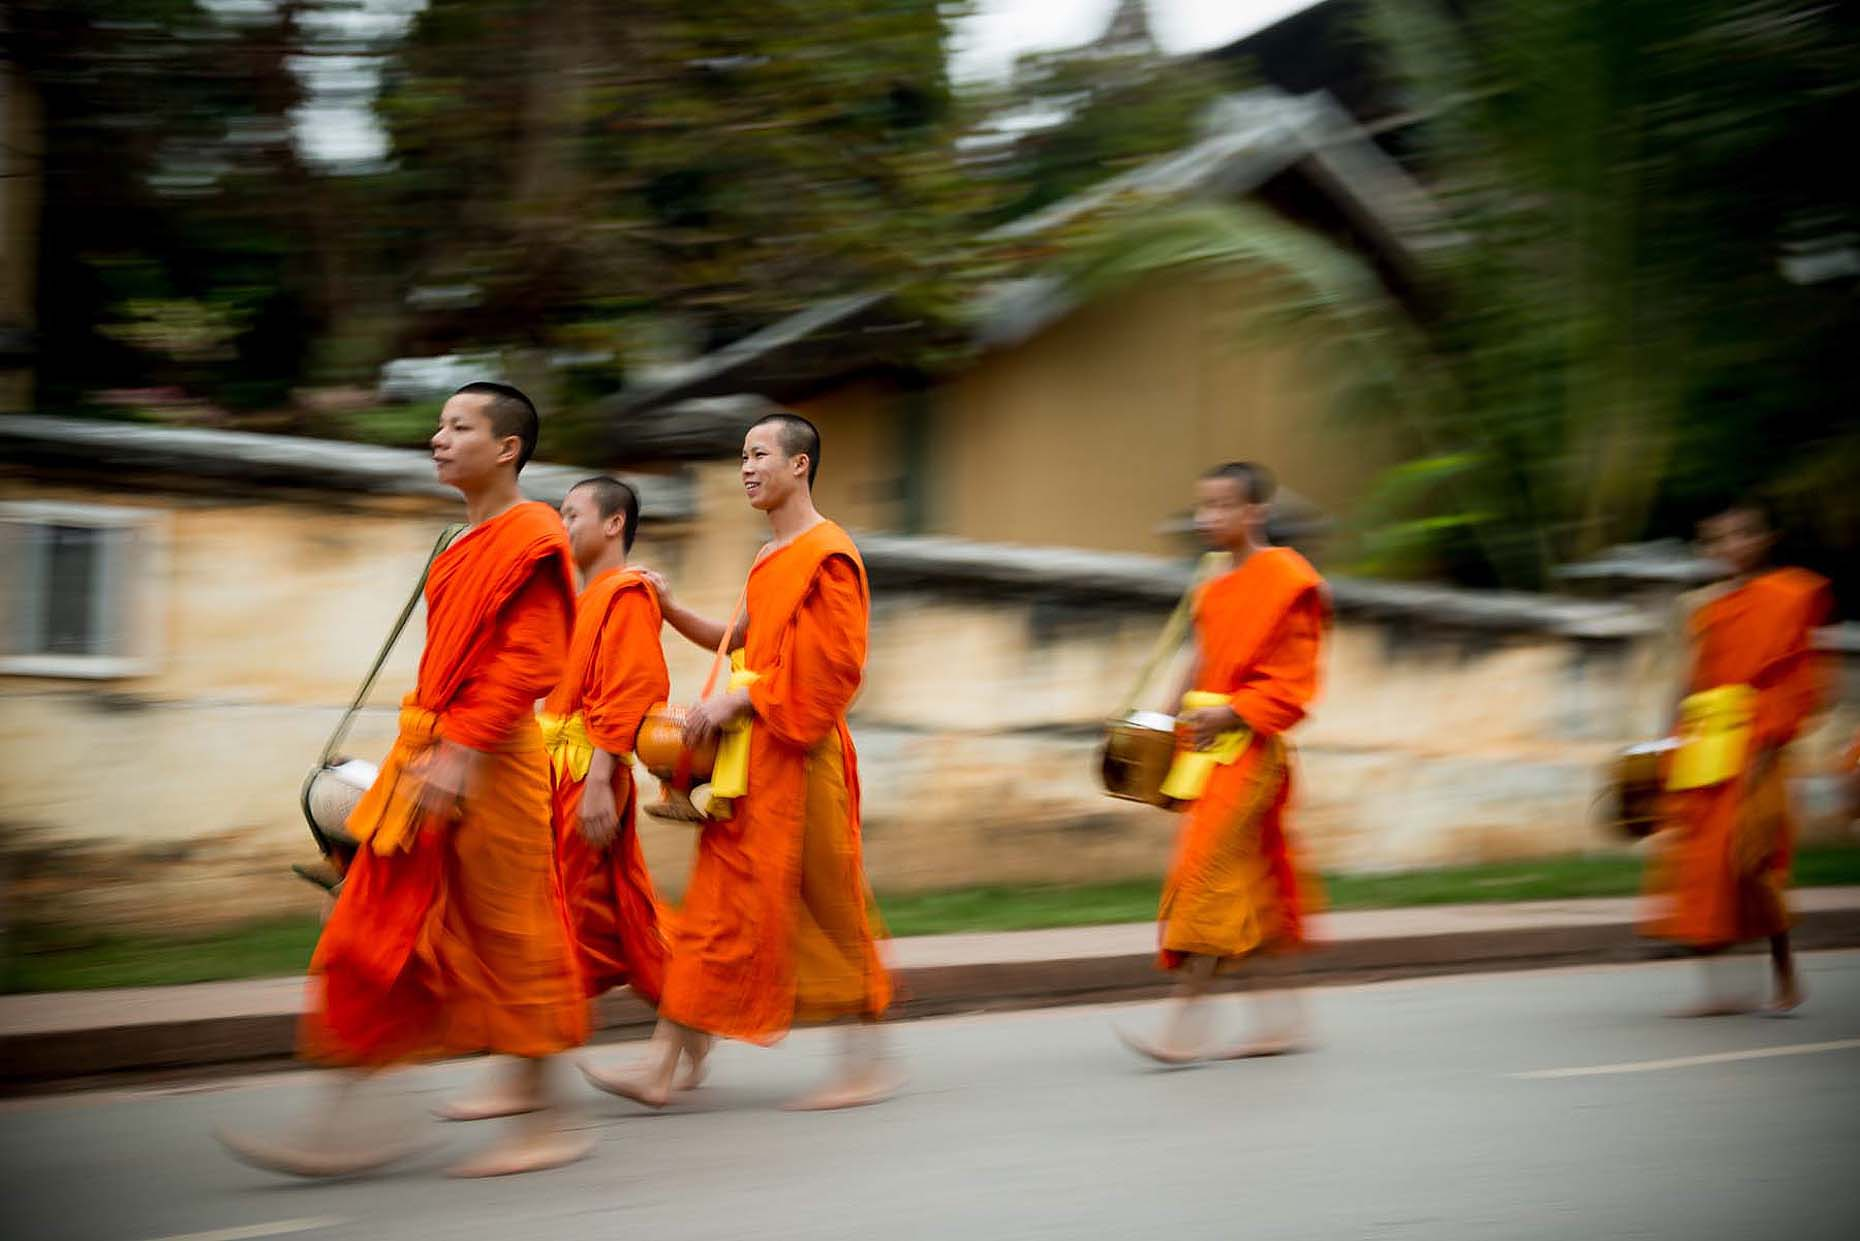 buddhist-monks-morning-alms-collecting-luang-prabang-laos-36